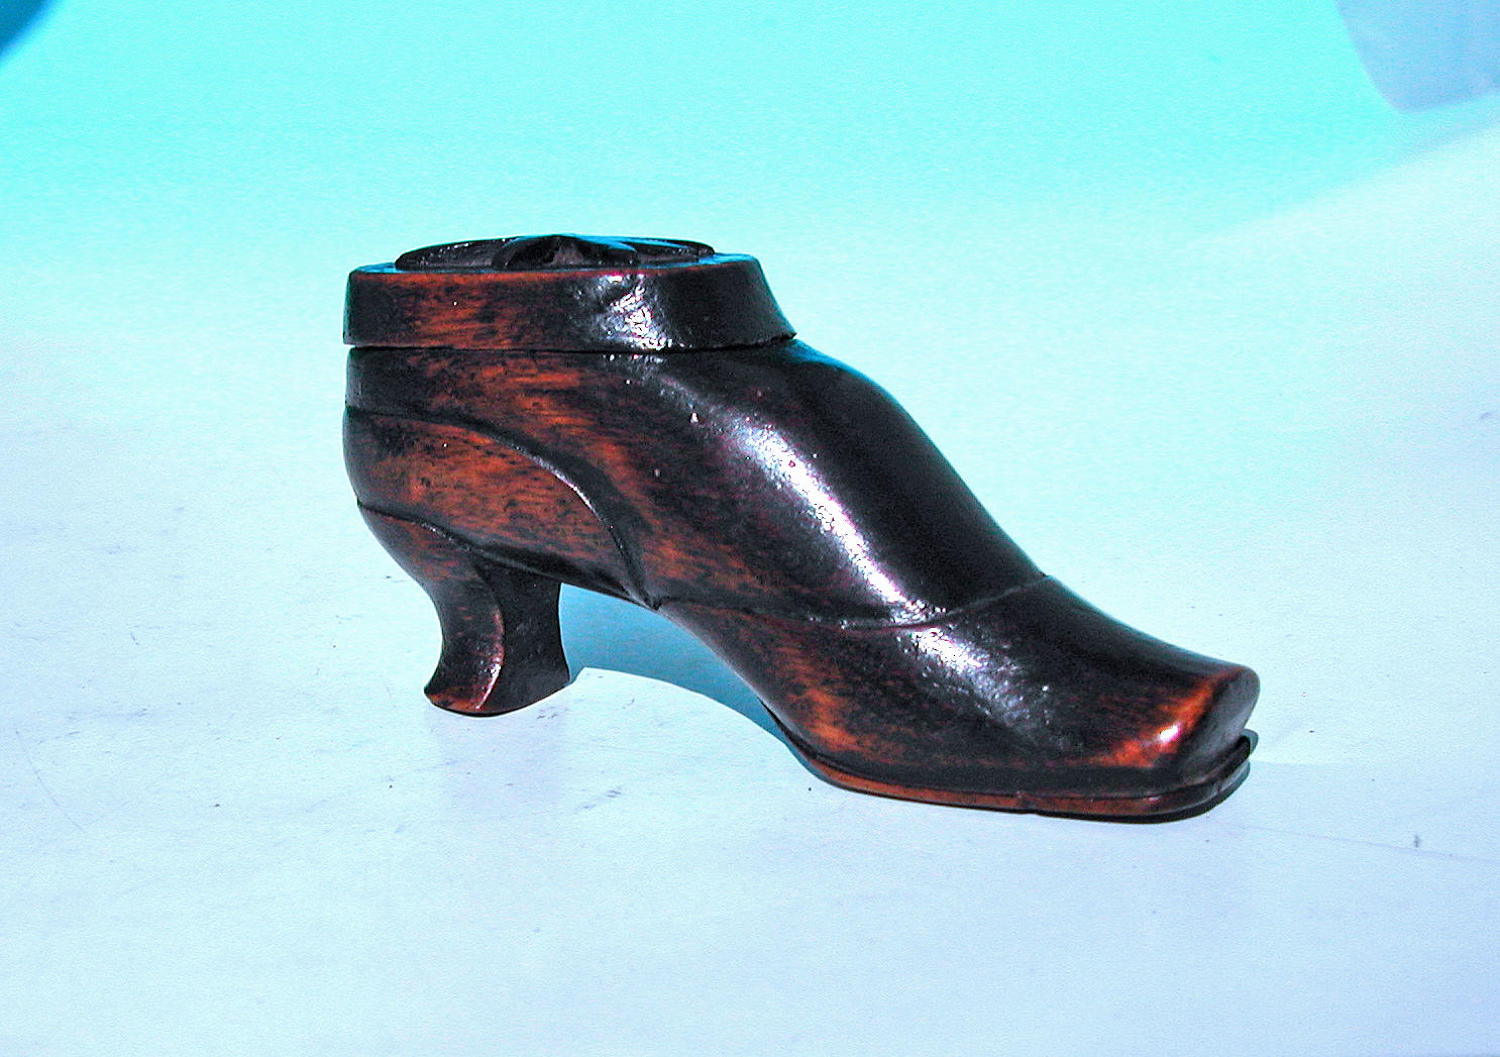 Antique Treen 19thc Decorative Shoe Snuff Box. Continental C1840-60.